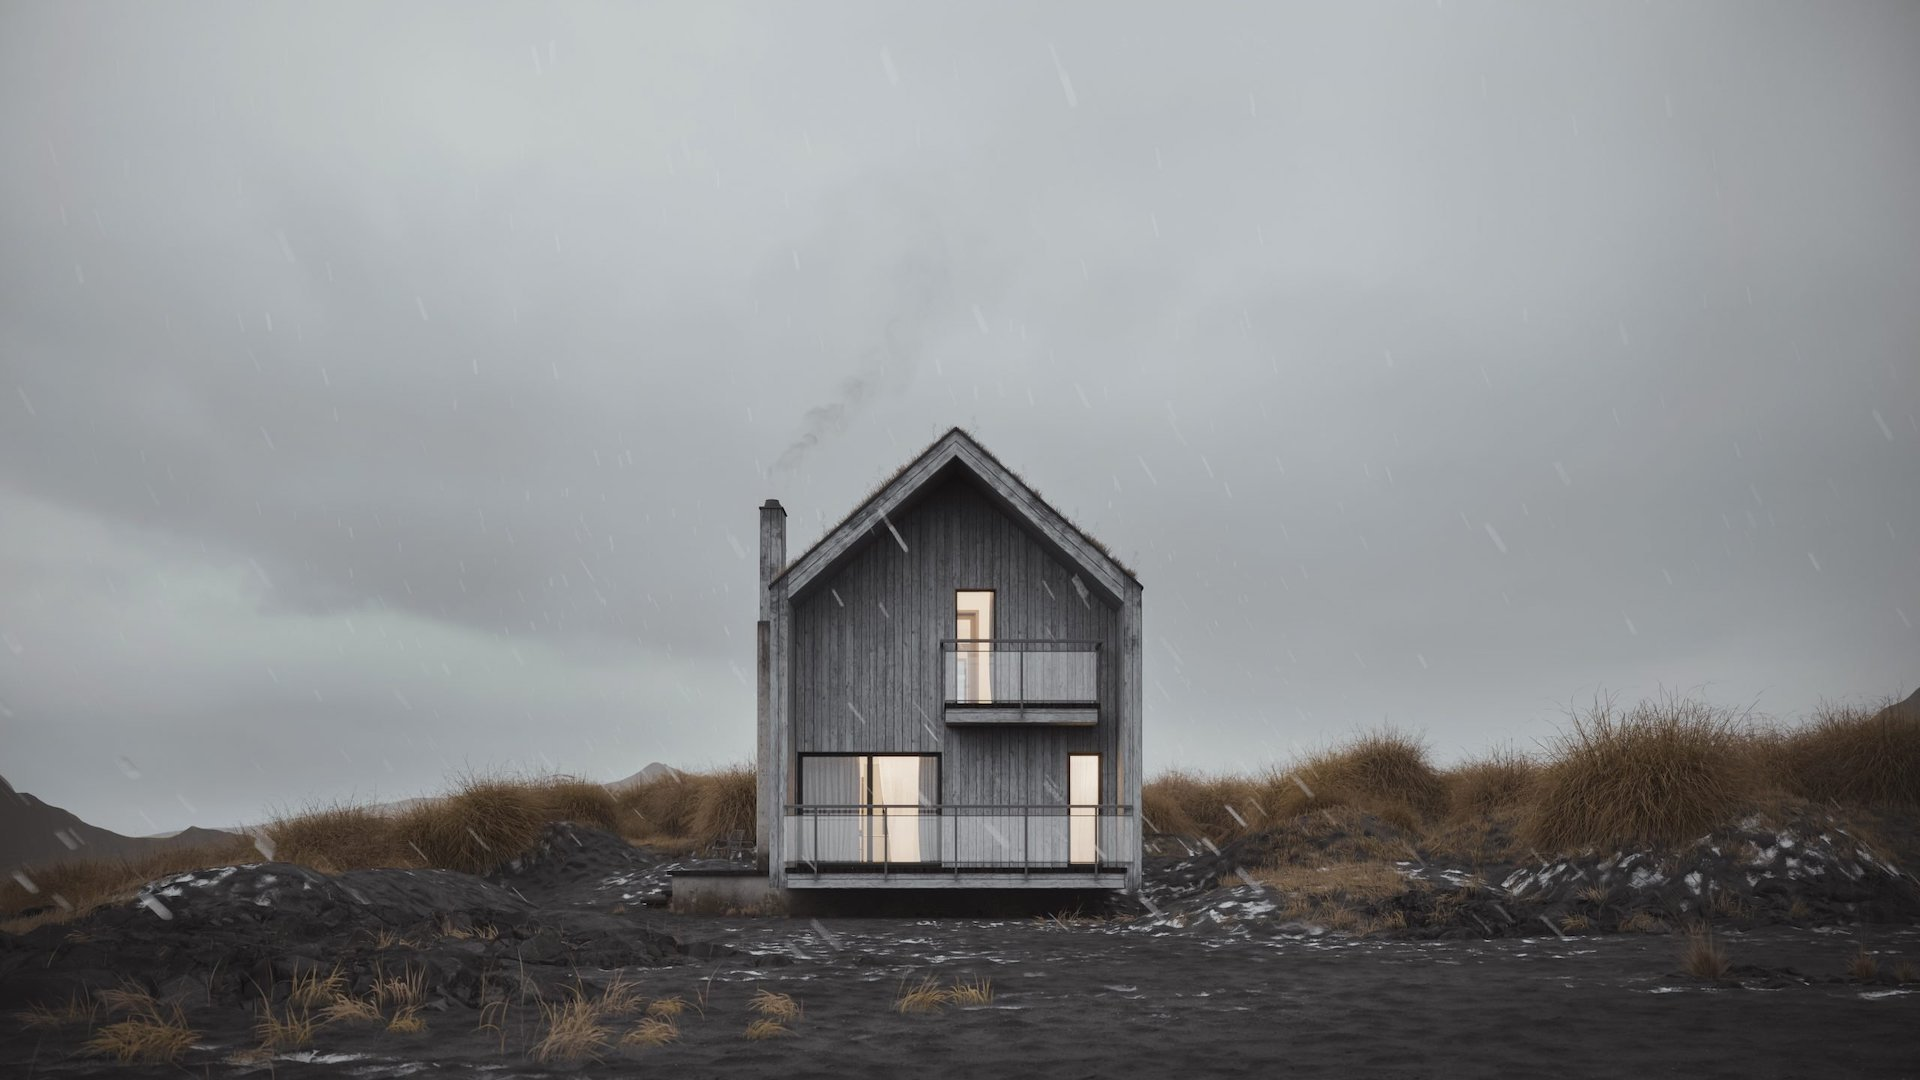 3D Visualization of a House for an Architecture Professional